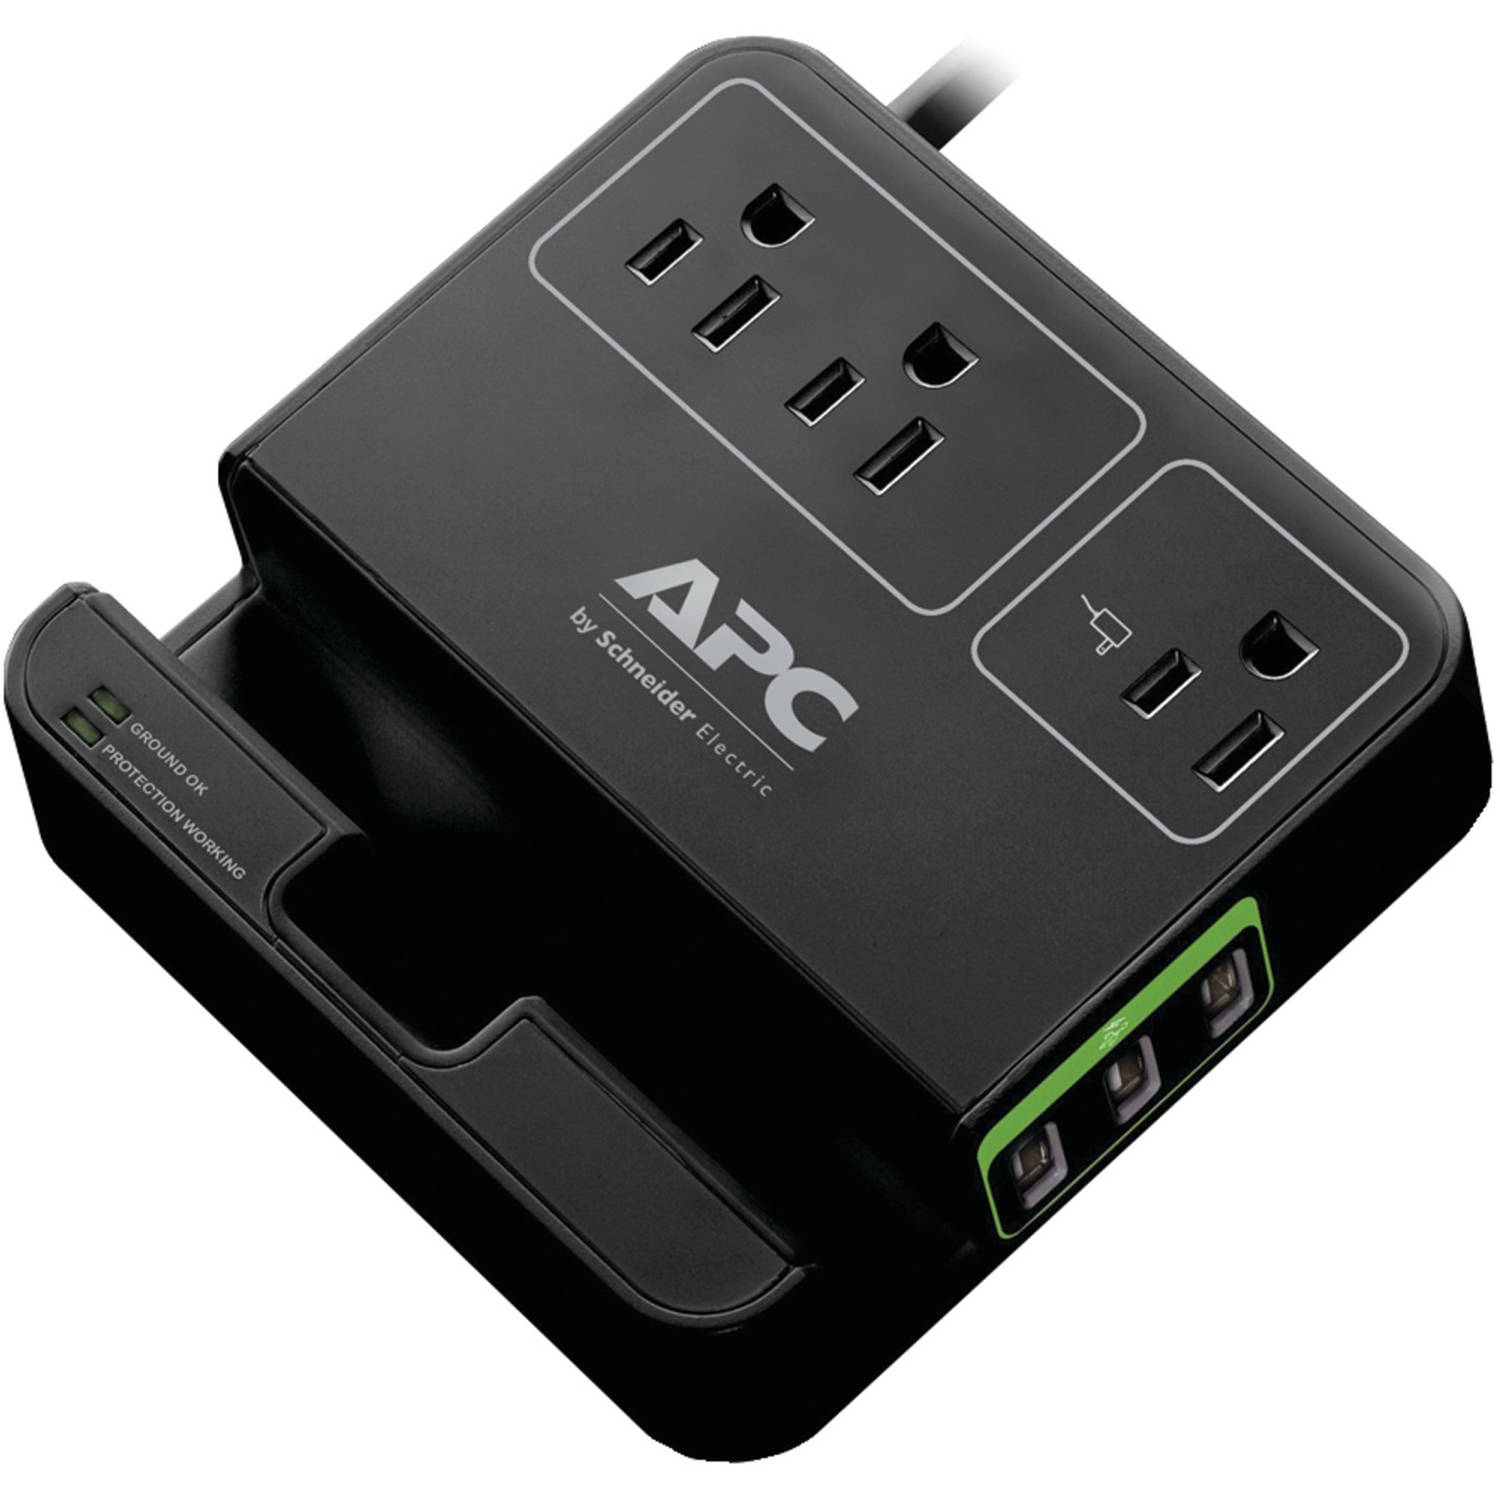 APC SurgeArrest 1080 Joule Surge Protector Power Brick, 3 Outlets with 3 USB Charging Ports, P3U3B